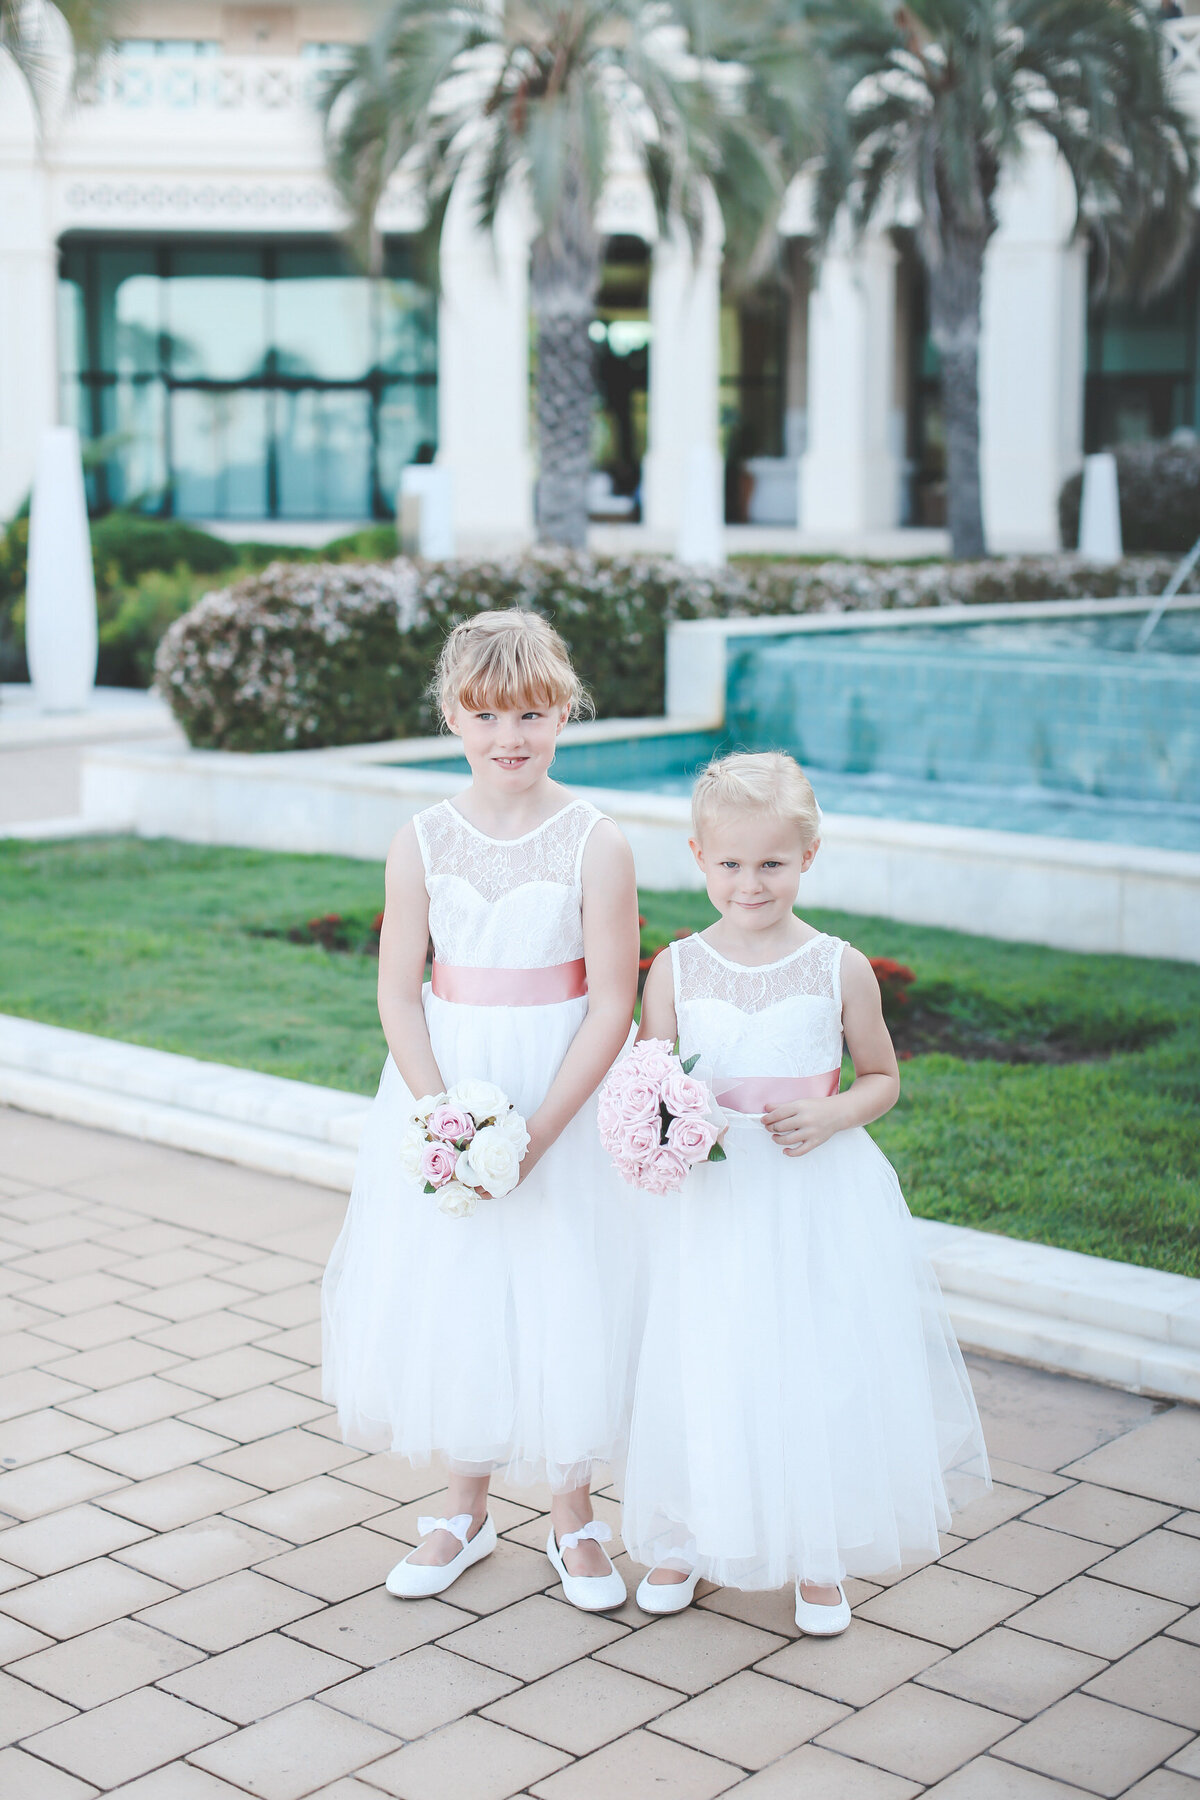 DESTINATION-WEDDING-SPAIN-HANNAH-MACGREGOR-PHOTOGRAPHY-0053